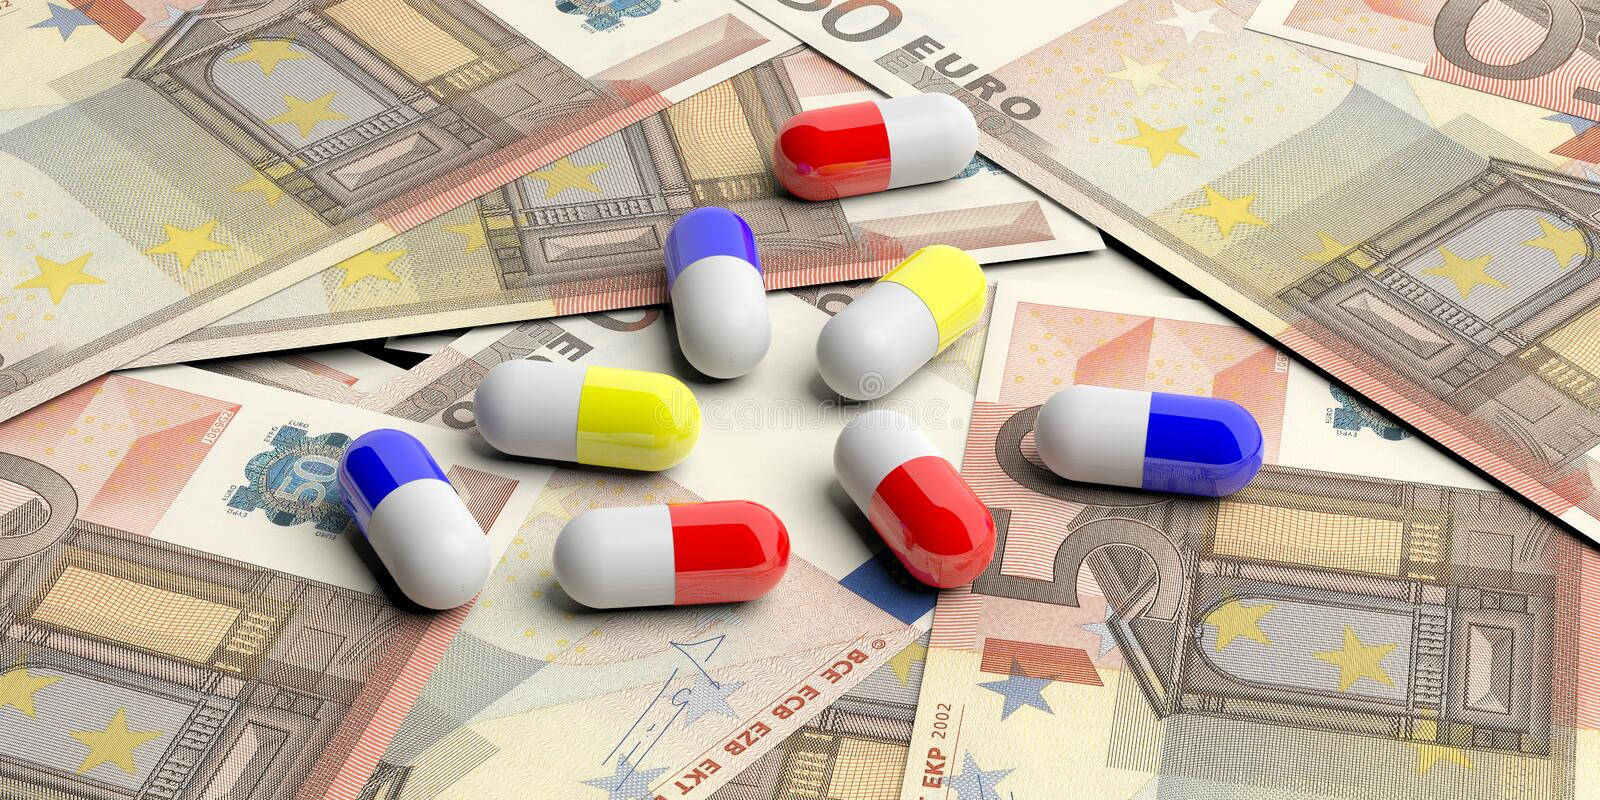 Preventivpillerkapslar på eurosedelbakgrund illustration 3d stock illustrationer